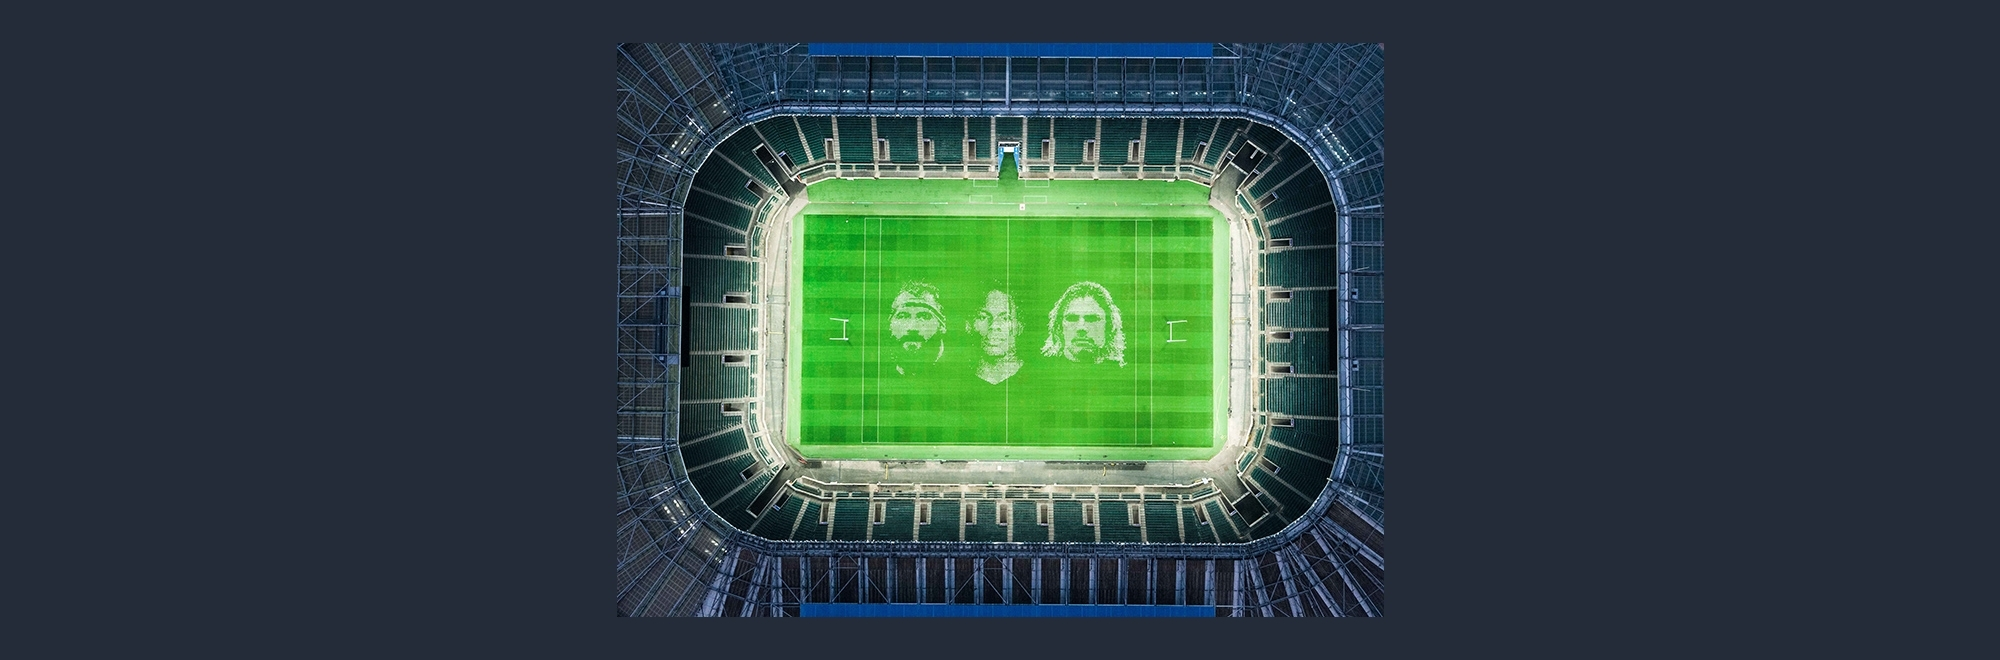 Giant pitch portrait of Premiership Rugby stars unveiled at Twickenham to mark long-awaited restart of the season